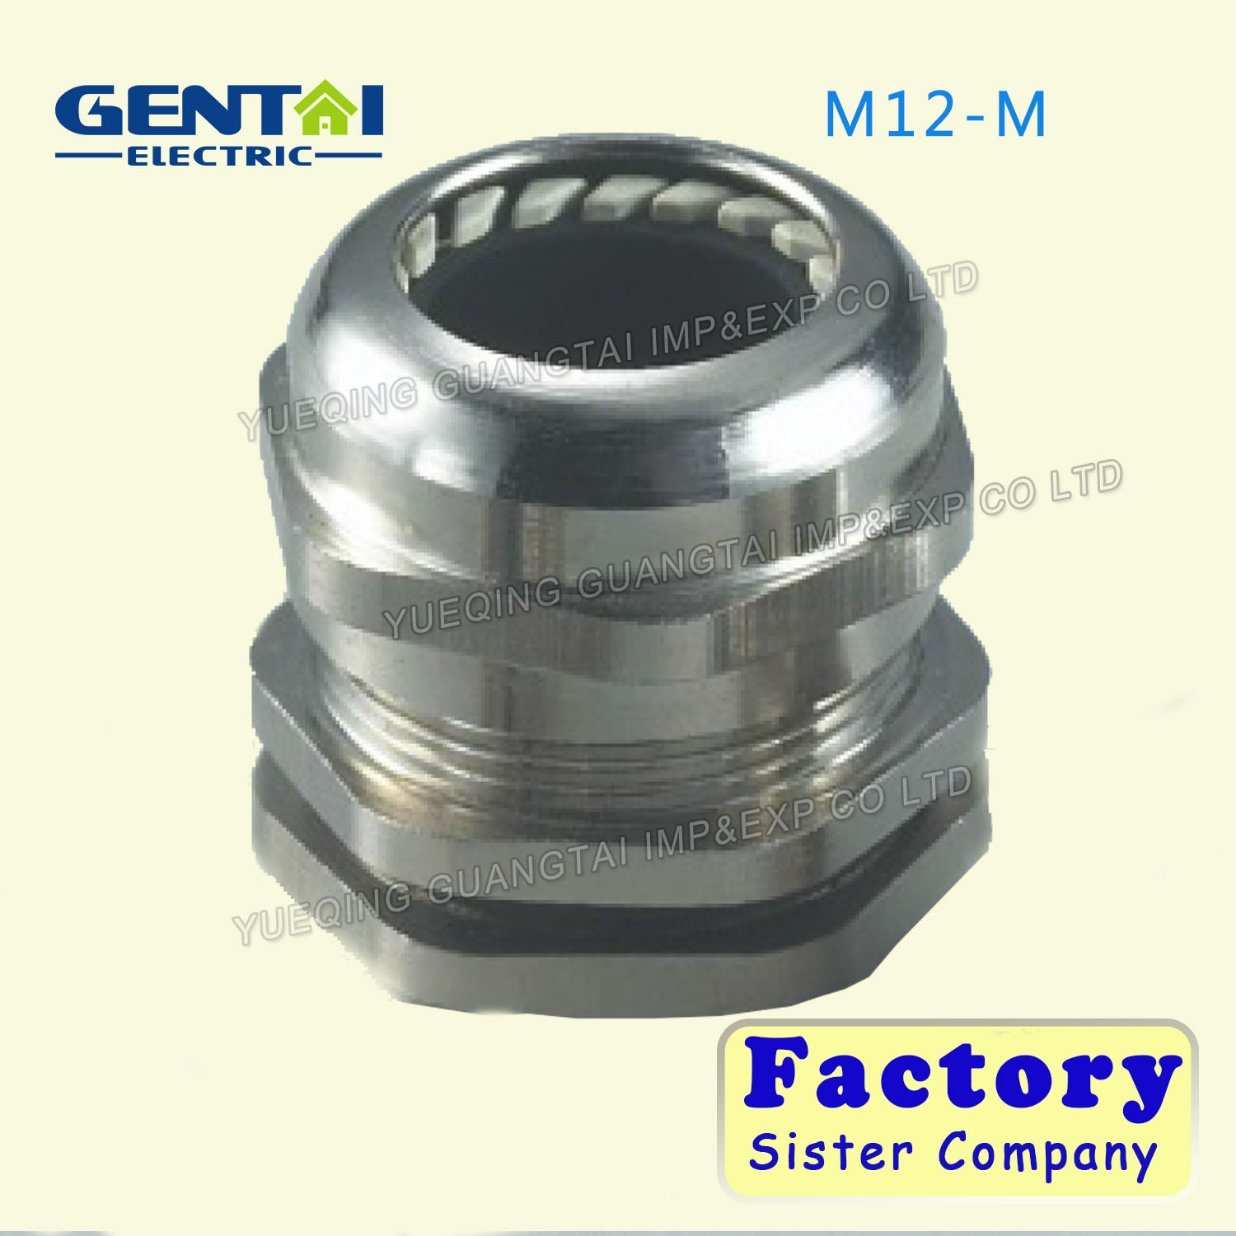 China Good Quality Brass Cable Gland - China Cable Glands, Cable ...